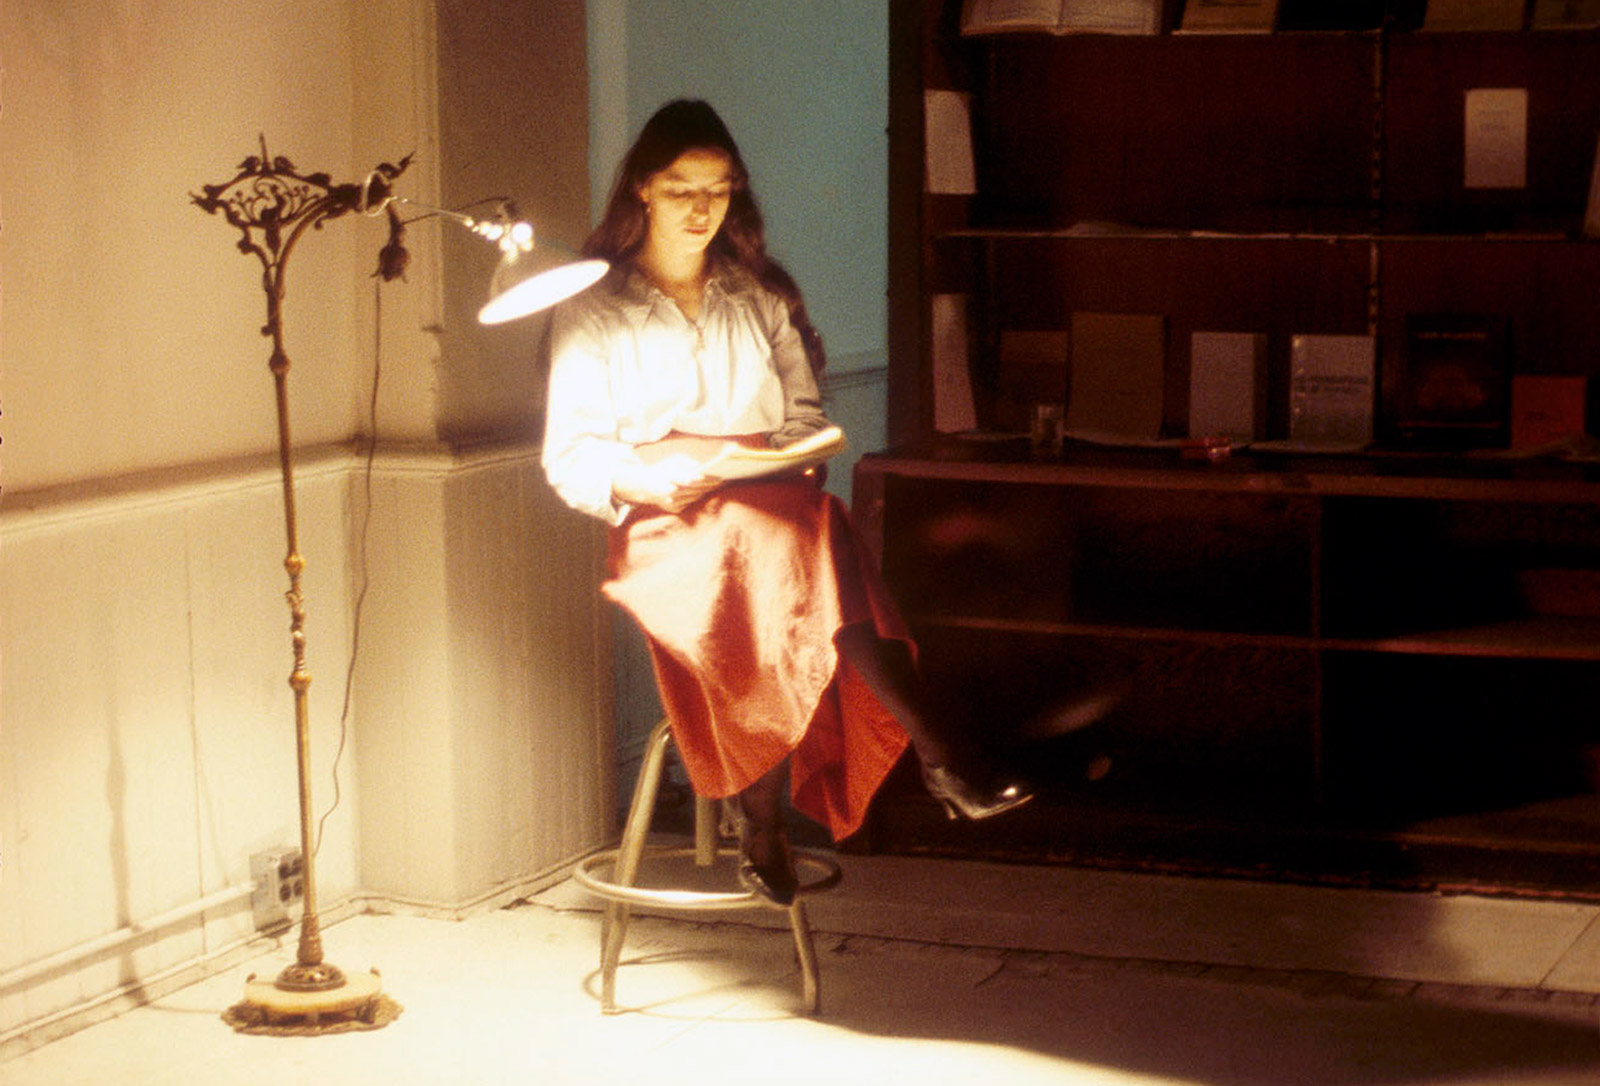 Caption: Martine Aballéa performance at Franklin Furnace 1976. Photo: Michael Katchen, courtesy of Franklin Furnace